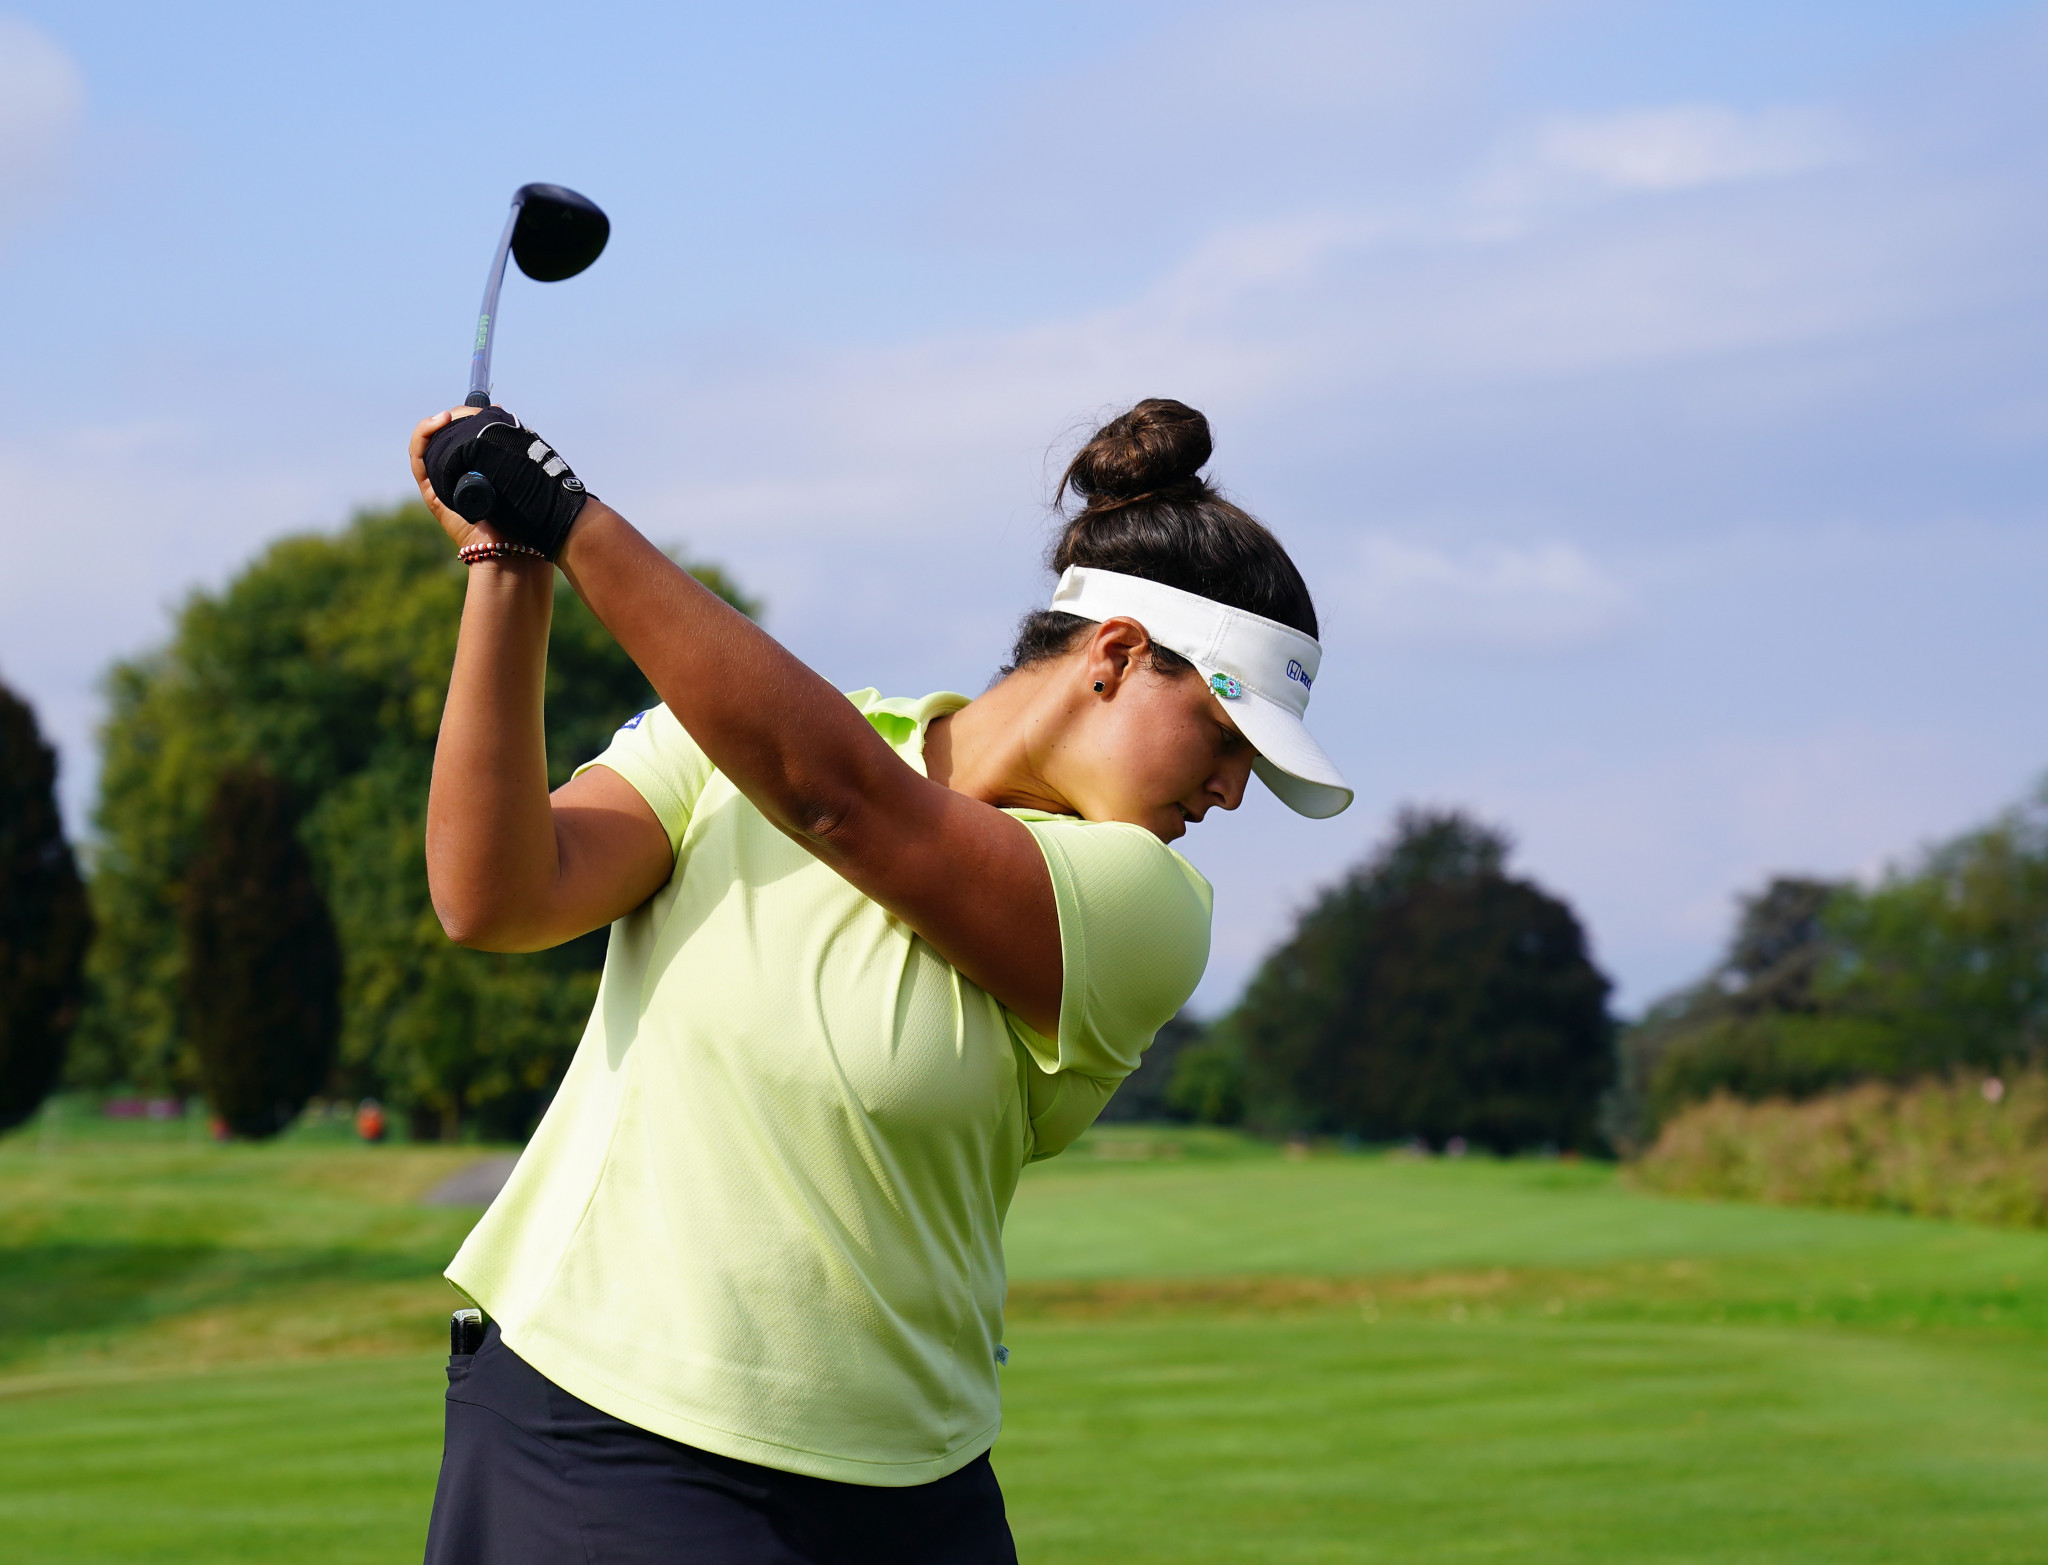 Four-way tie for lead at halfway stage of Evian Championship